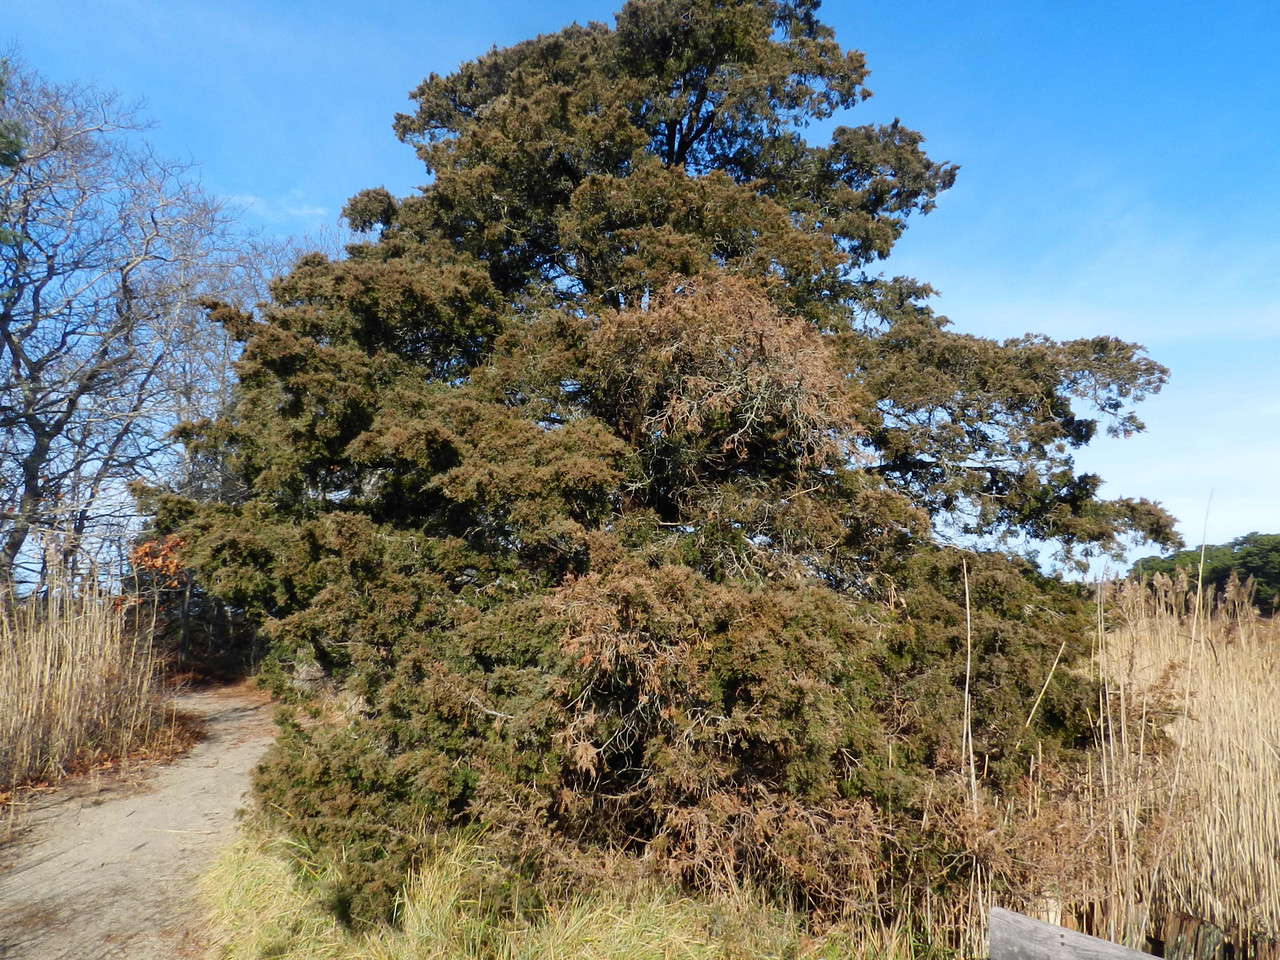 Eastern Redcedar -- Juniperus virginiana, is actually a juniper and distant relative of cedars